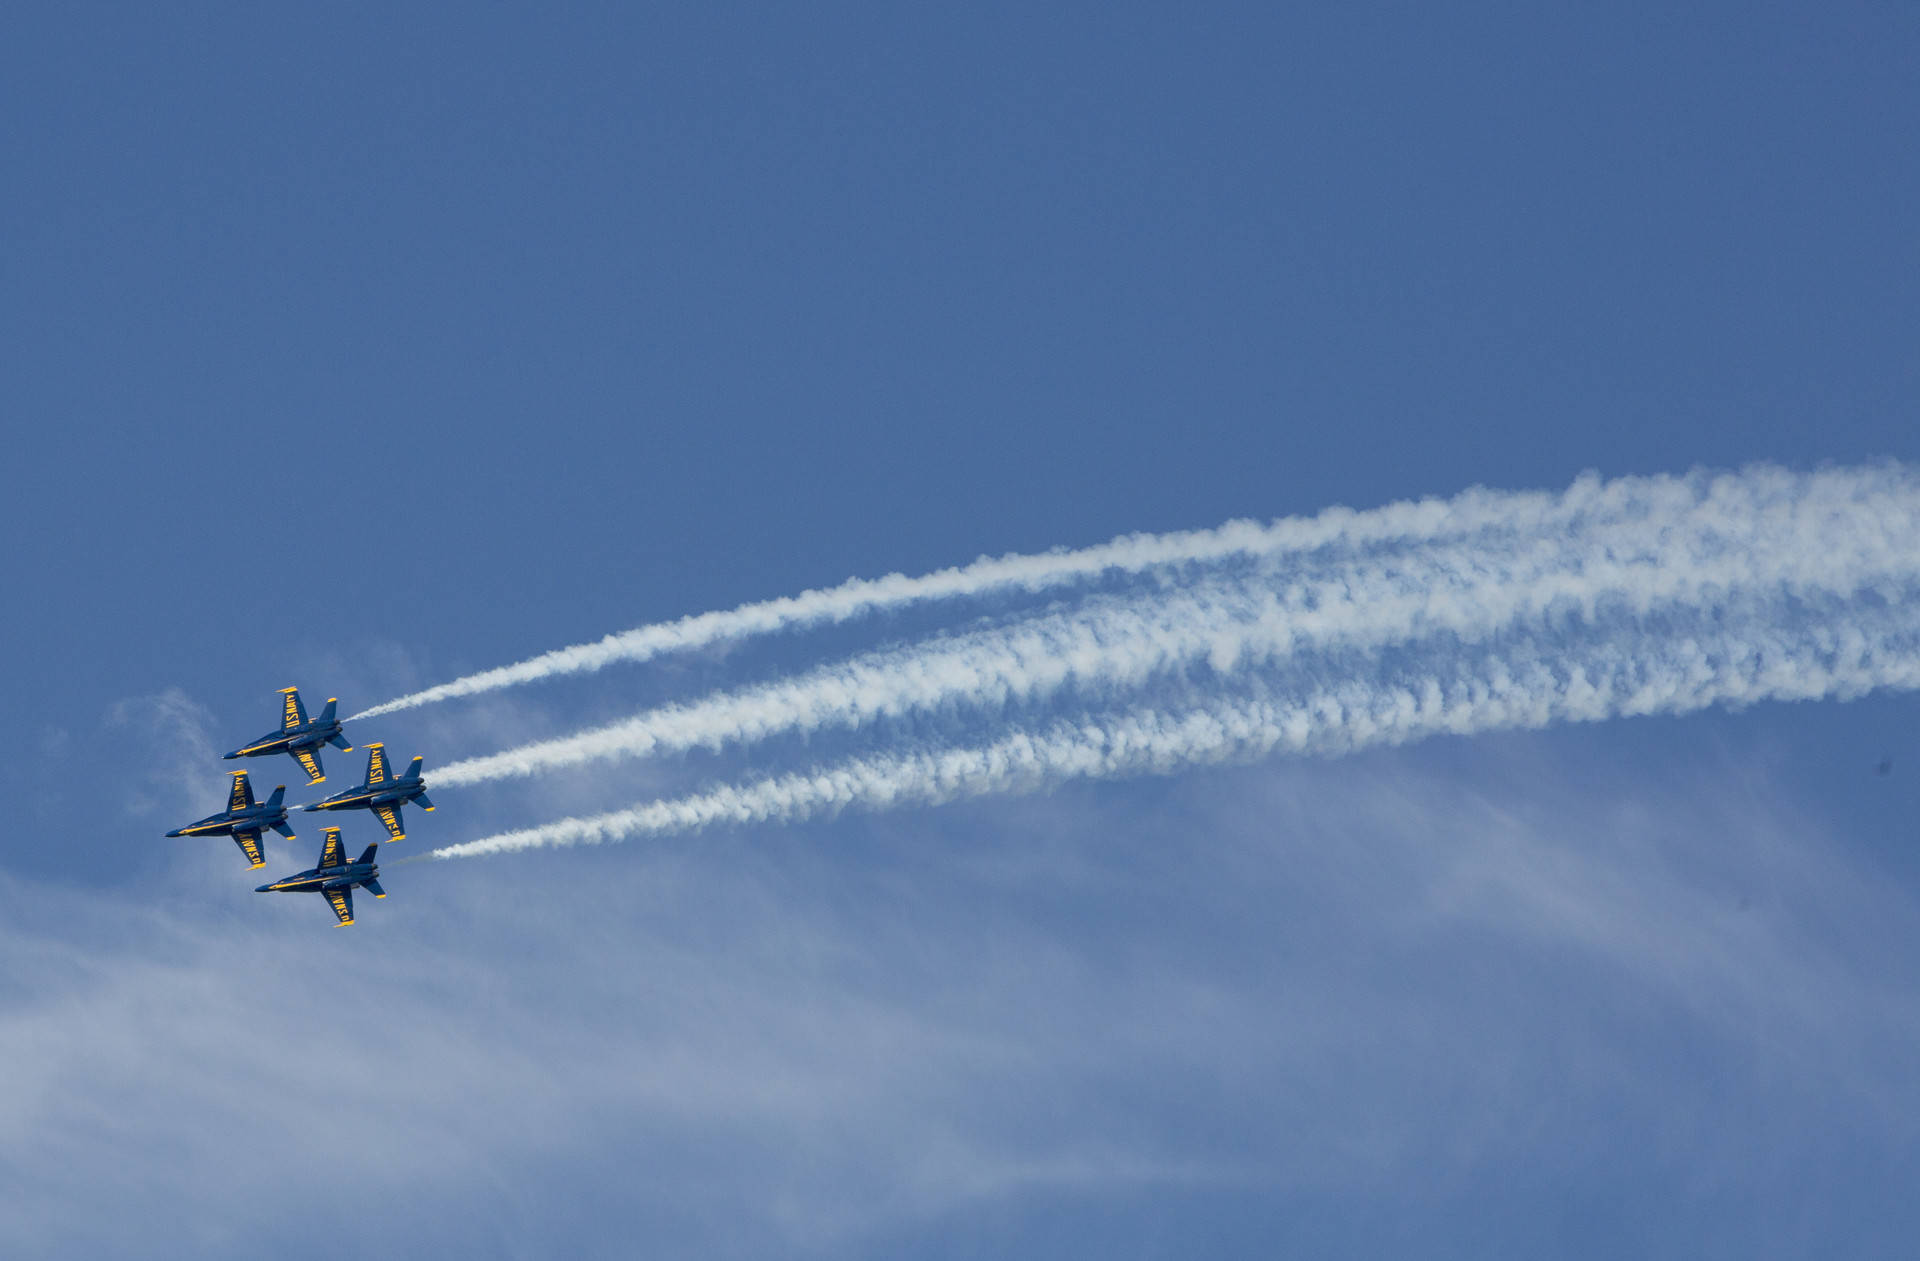 U.S. Navy Blue Angels are back for San Francisco Fleet Week 2019 air shows. Anne Wernikoff/KQED